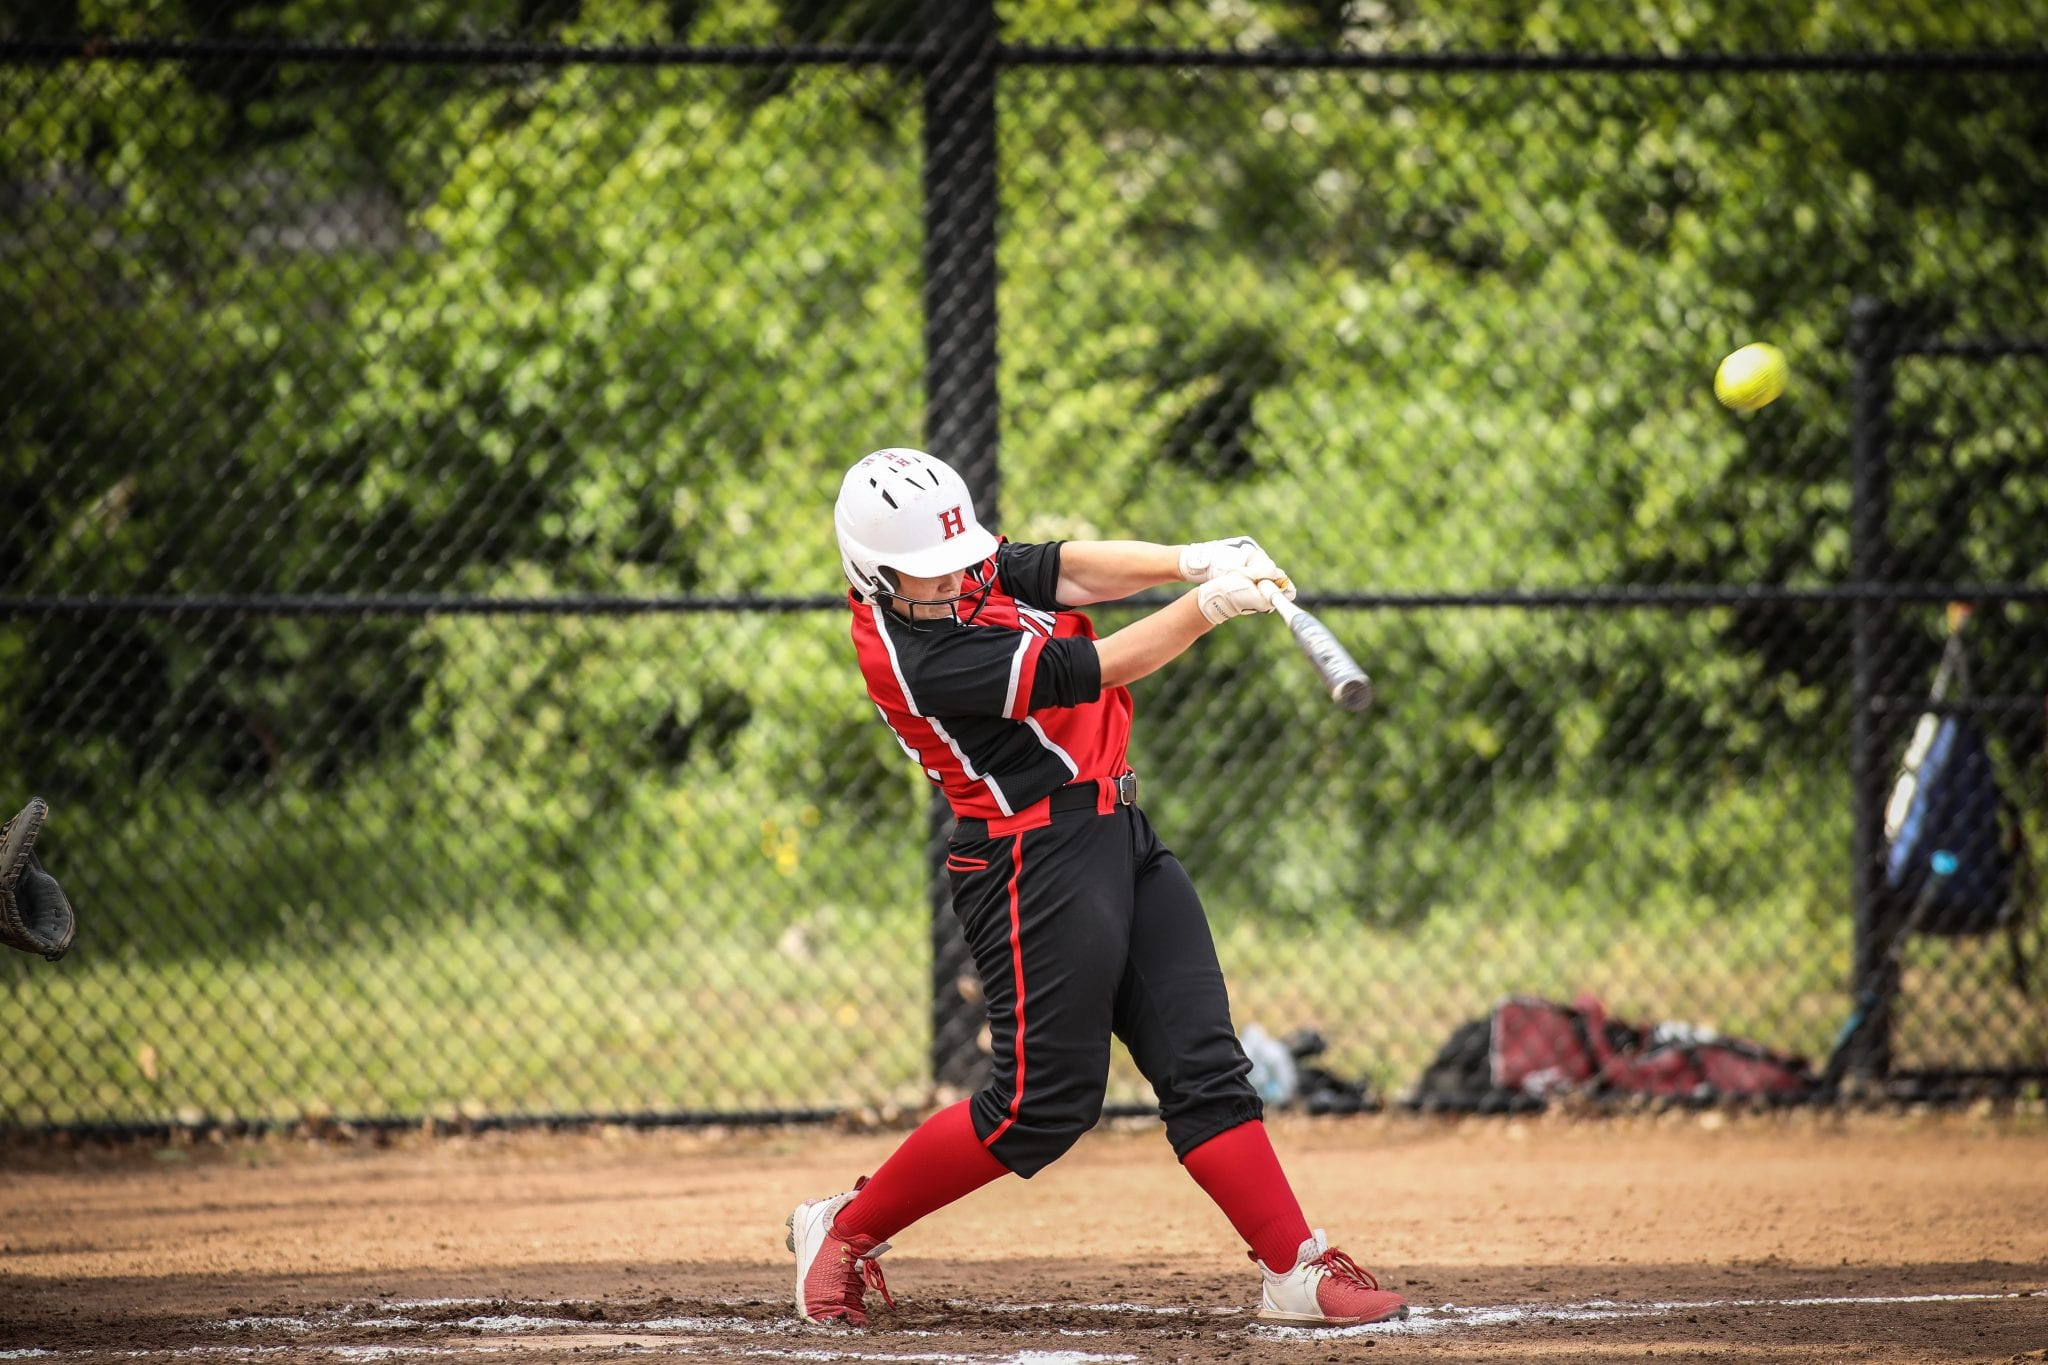 Sophomore Sarah Holler launched this pitch over the centerfield fence for what is believed to be the first grand slam in HHS softball history.